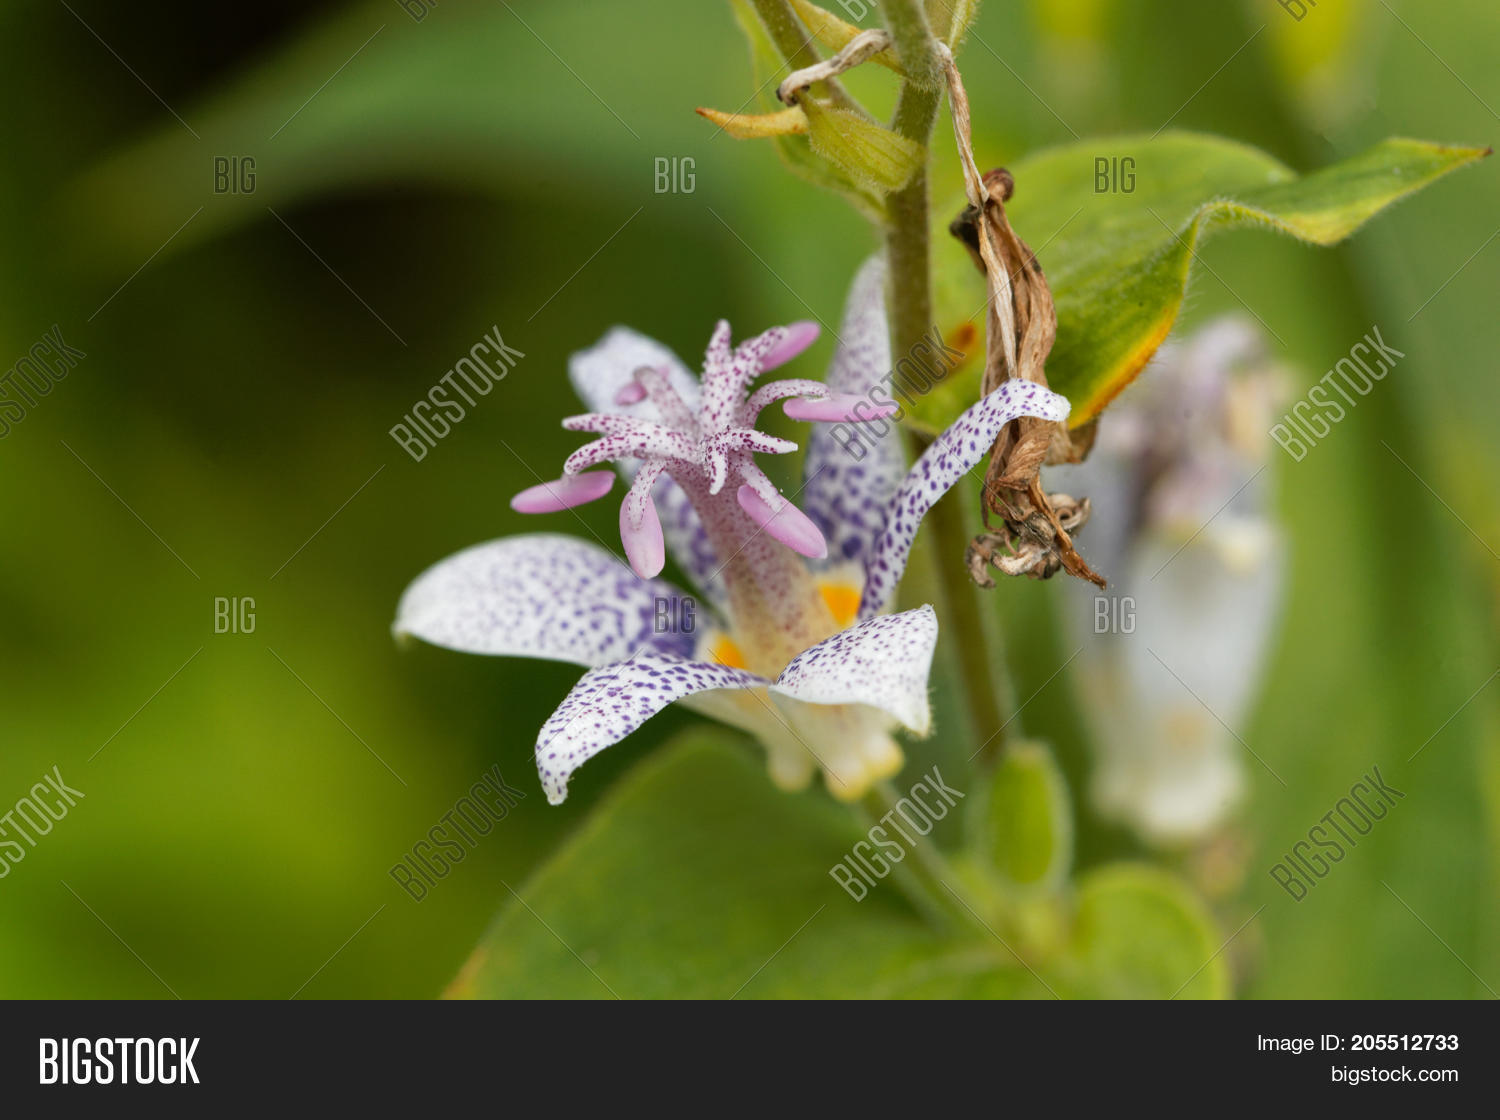 Toad lily flower image photo free trial bigstock toad lily flower tricyrtis hirta izmirmasajfo